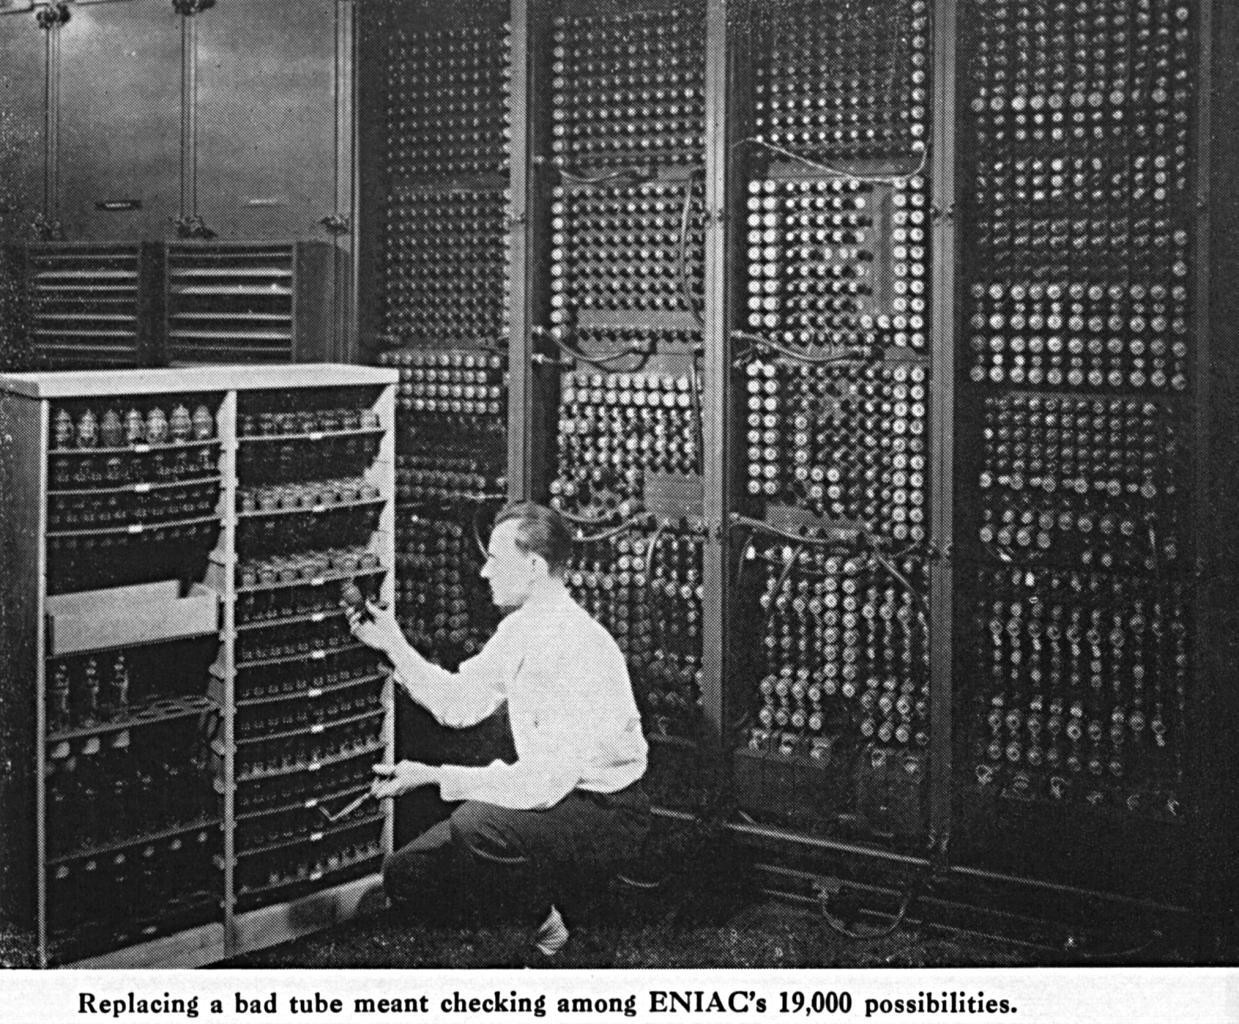 A scientist works on the Electronic Numerical Integrator and Computer (ENIAC), the first programmable, general-purpose digital computer, built during World War II by the U.S.